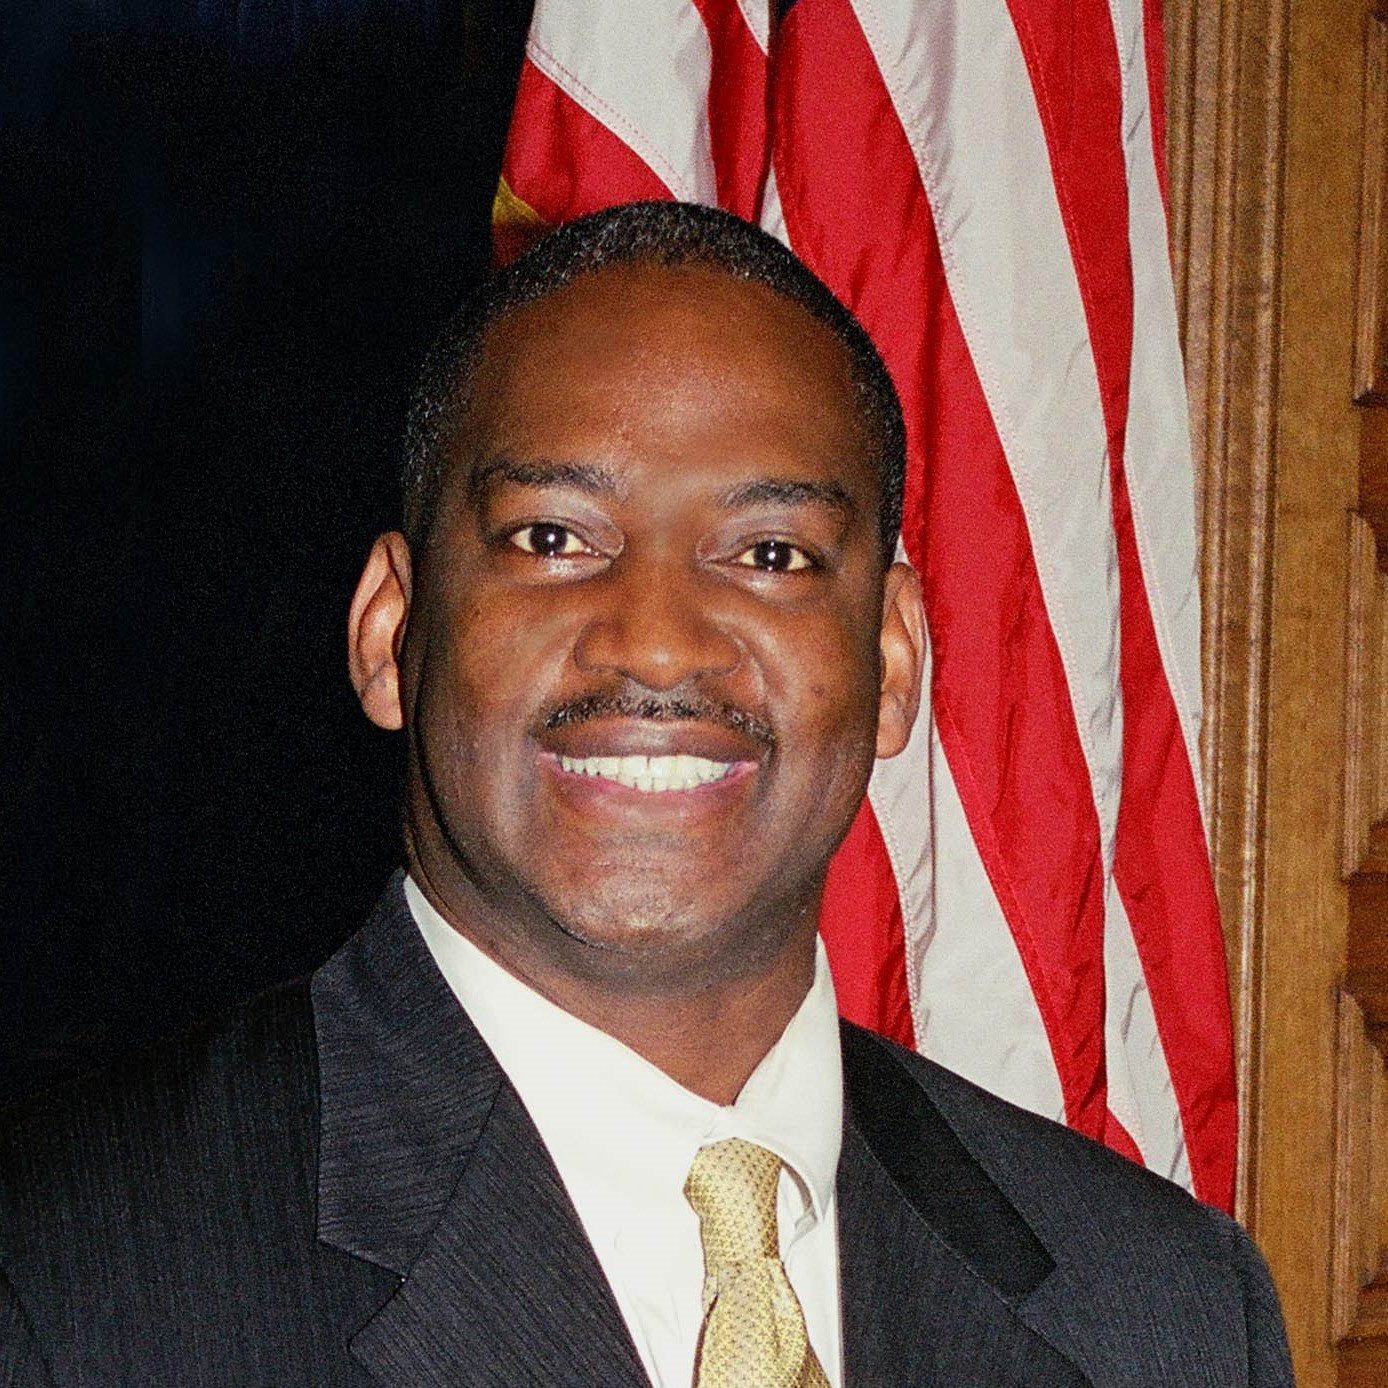 Georgia State Senator Emauel Jones